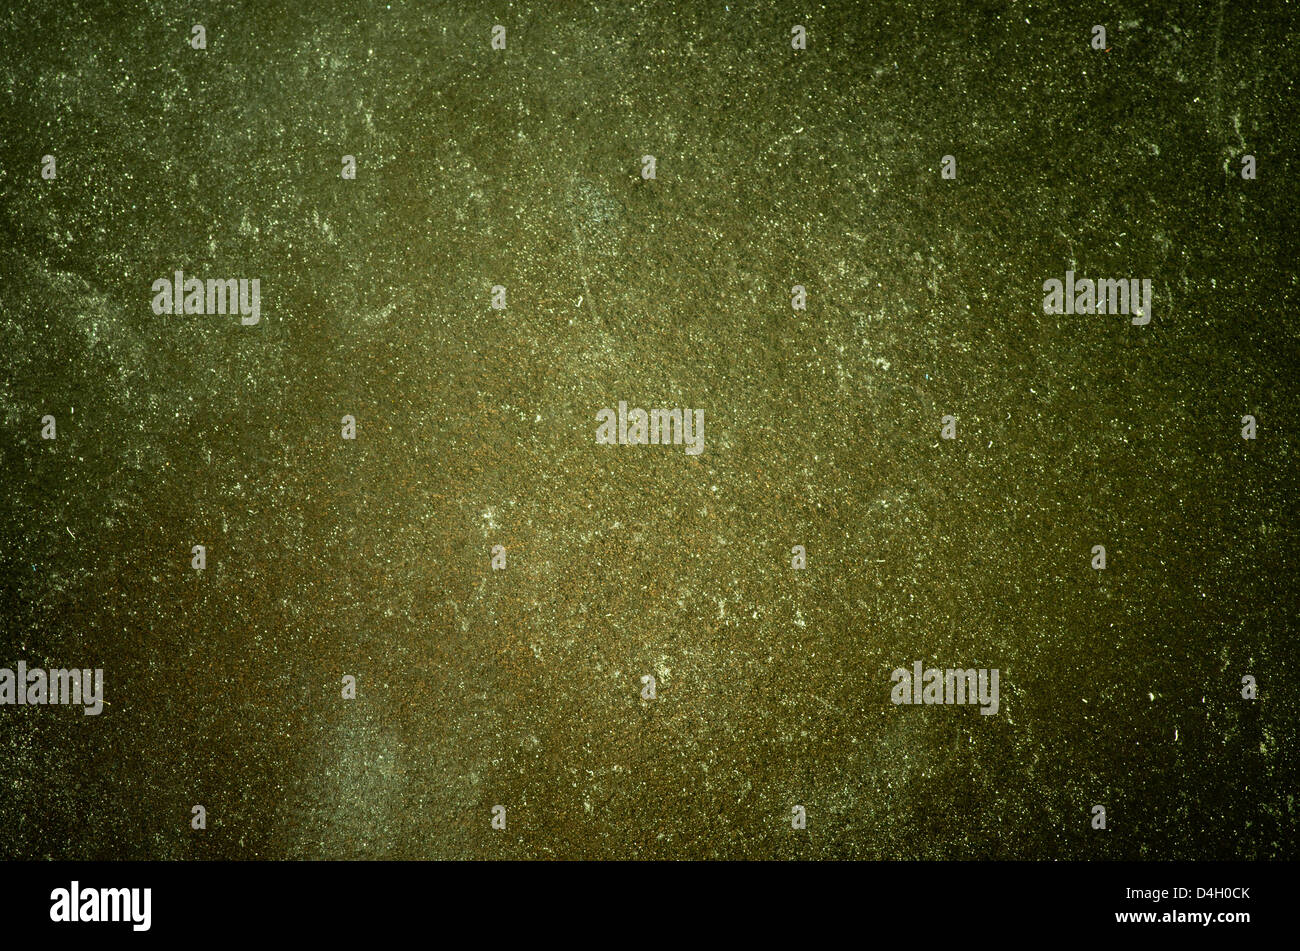 Vintage paper texture for background - Stock Image